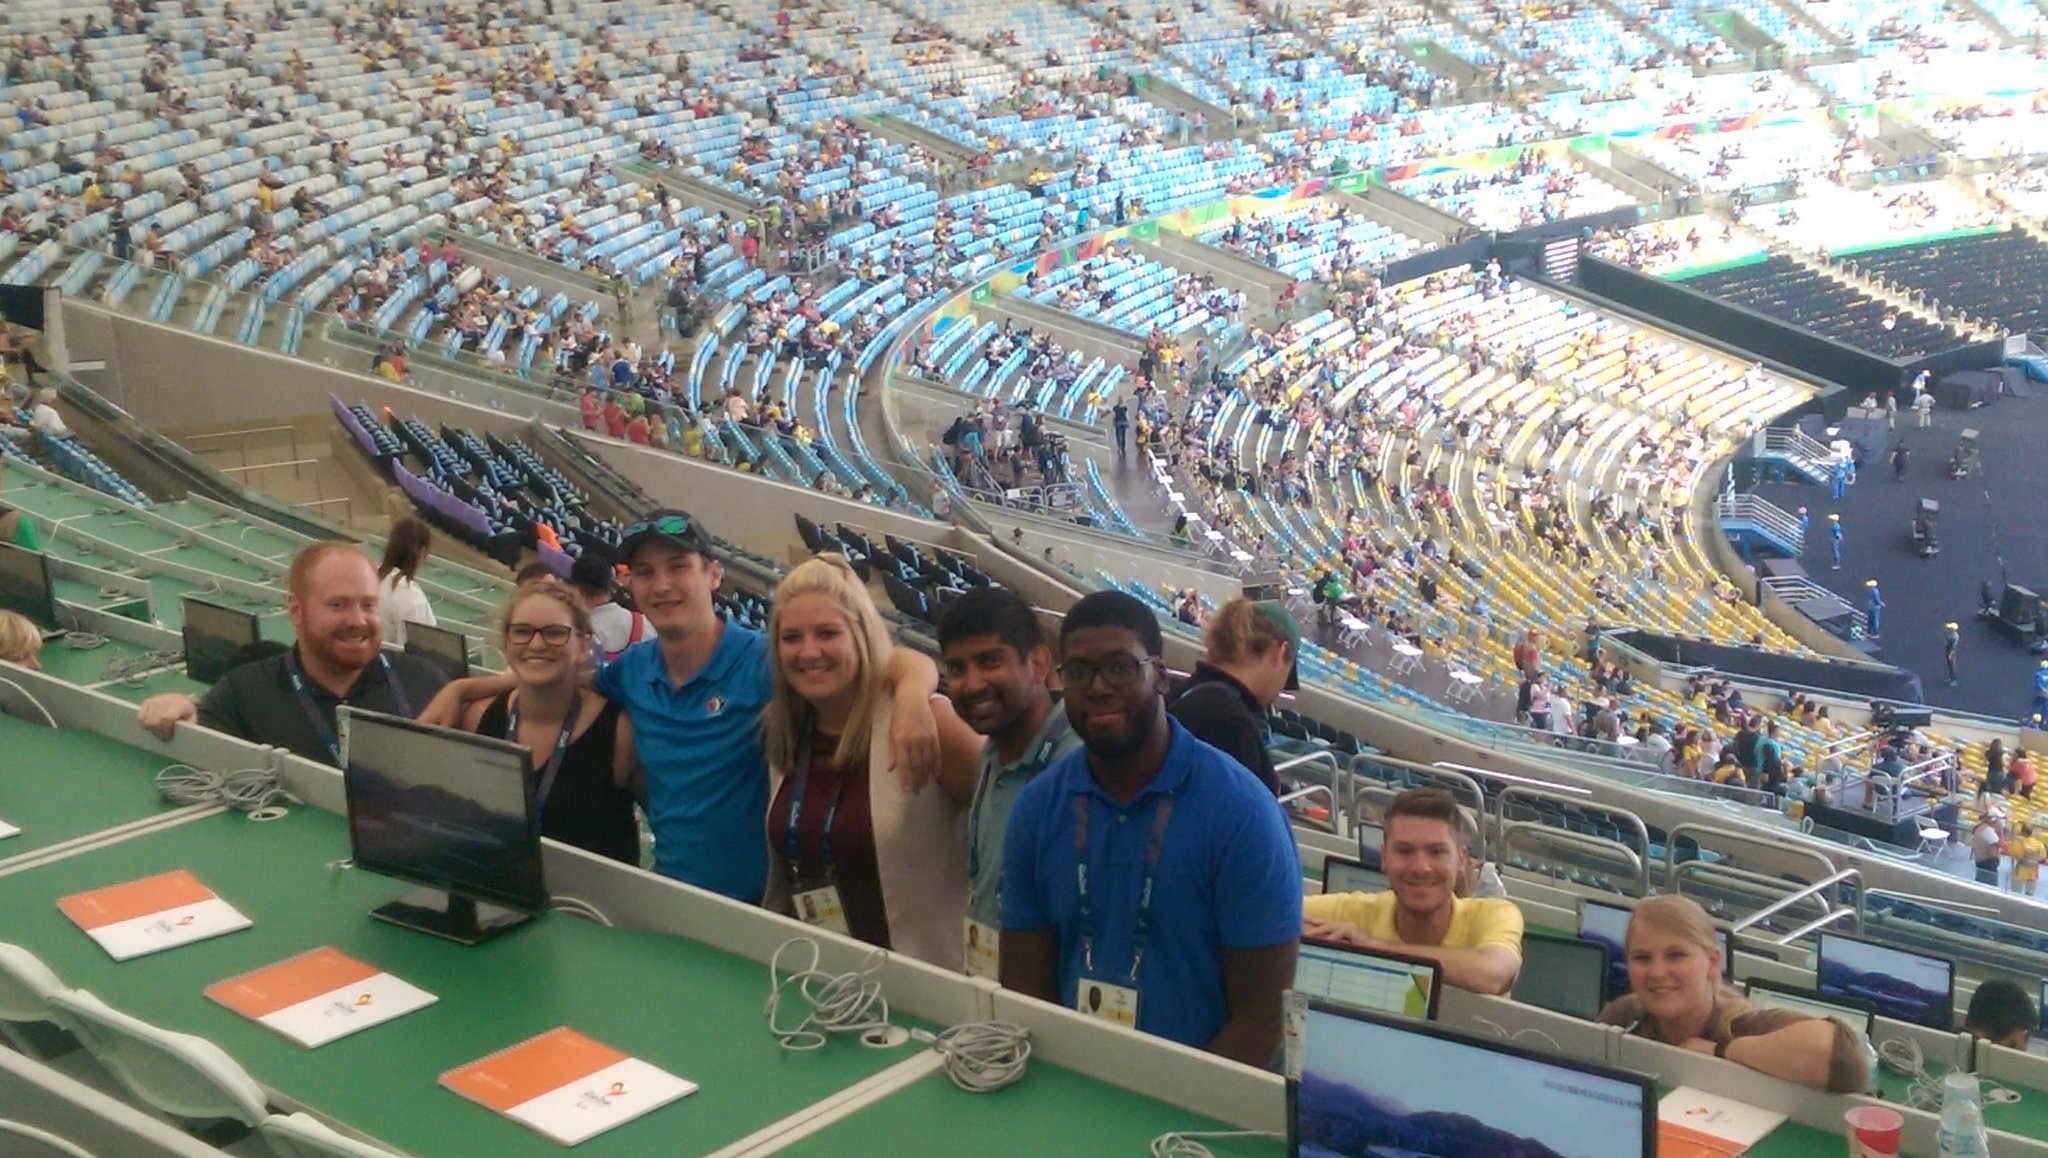 .@CentennialEDU sports journalism students pumped  for .@Paralympics opening ceremony in #Rio2016 . #parabrazil16 https://t.co/OahFx2mlh4